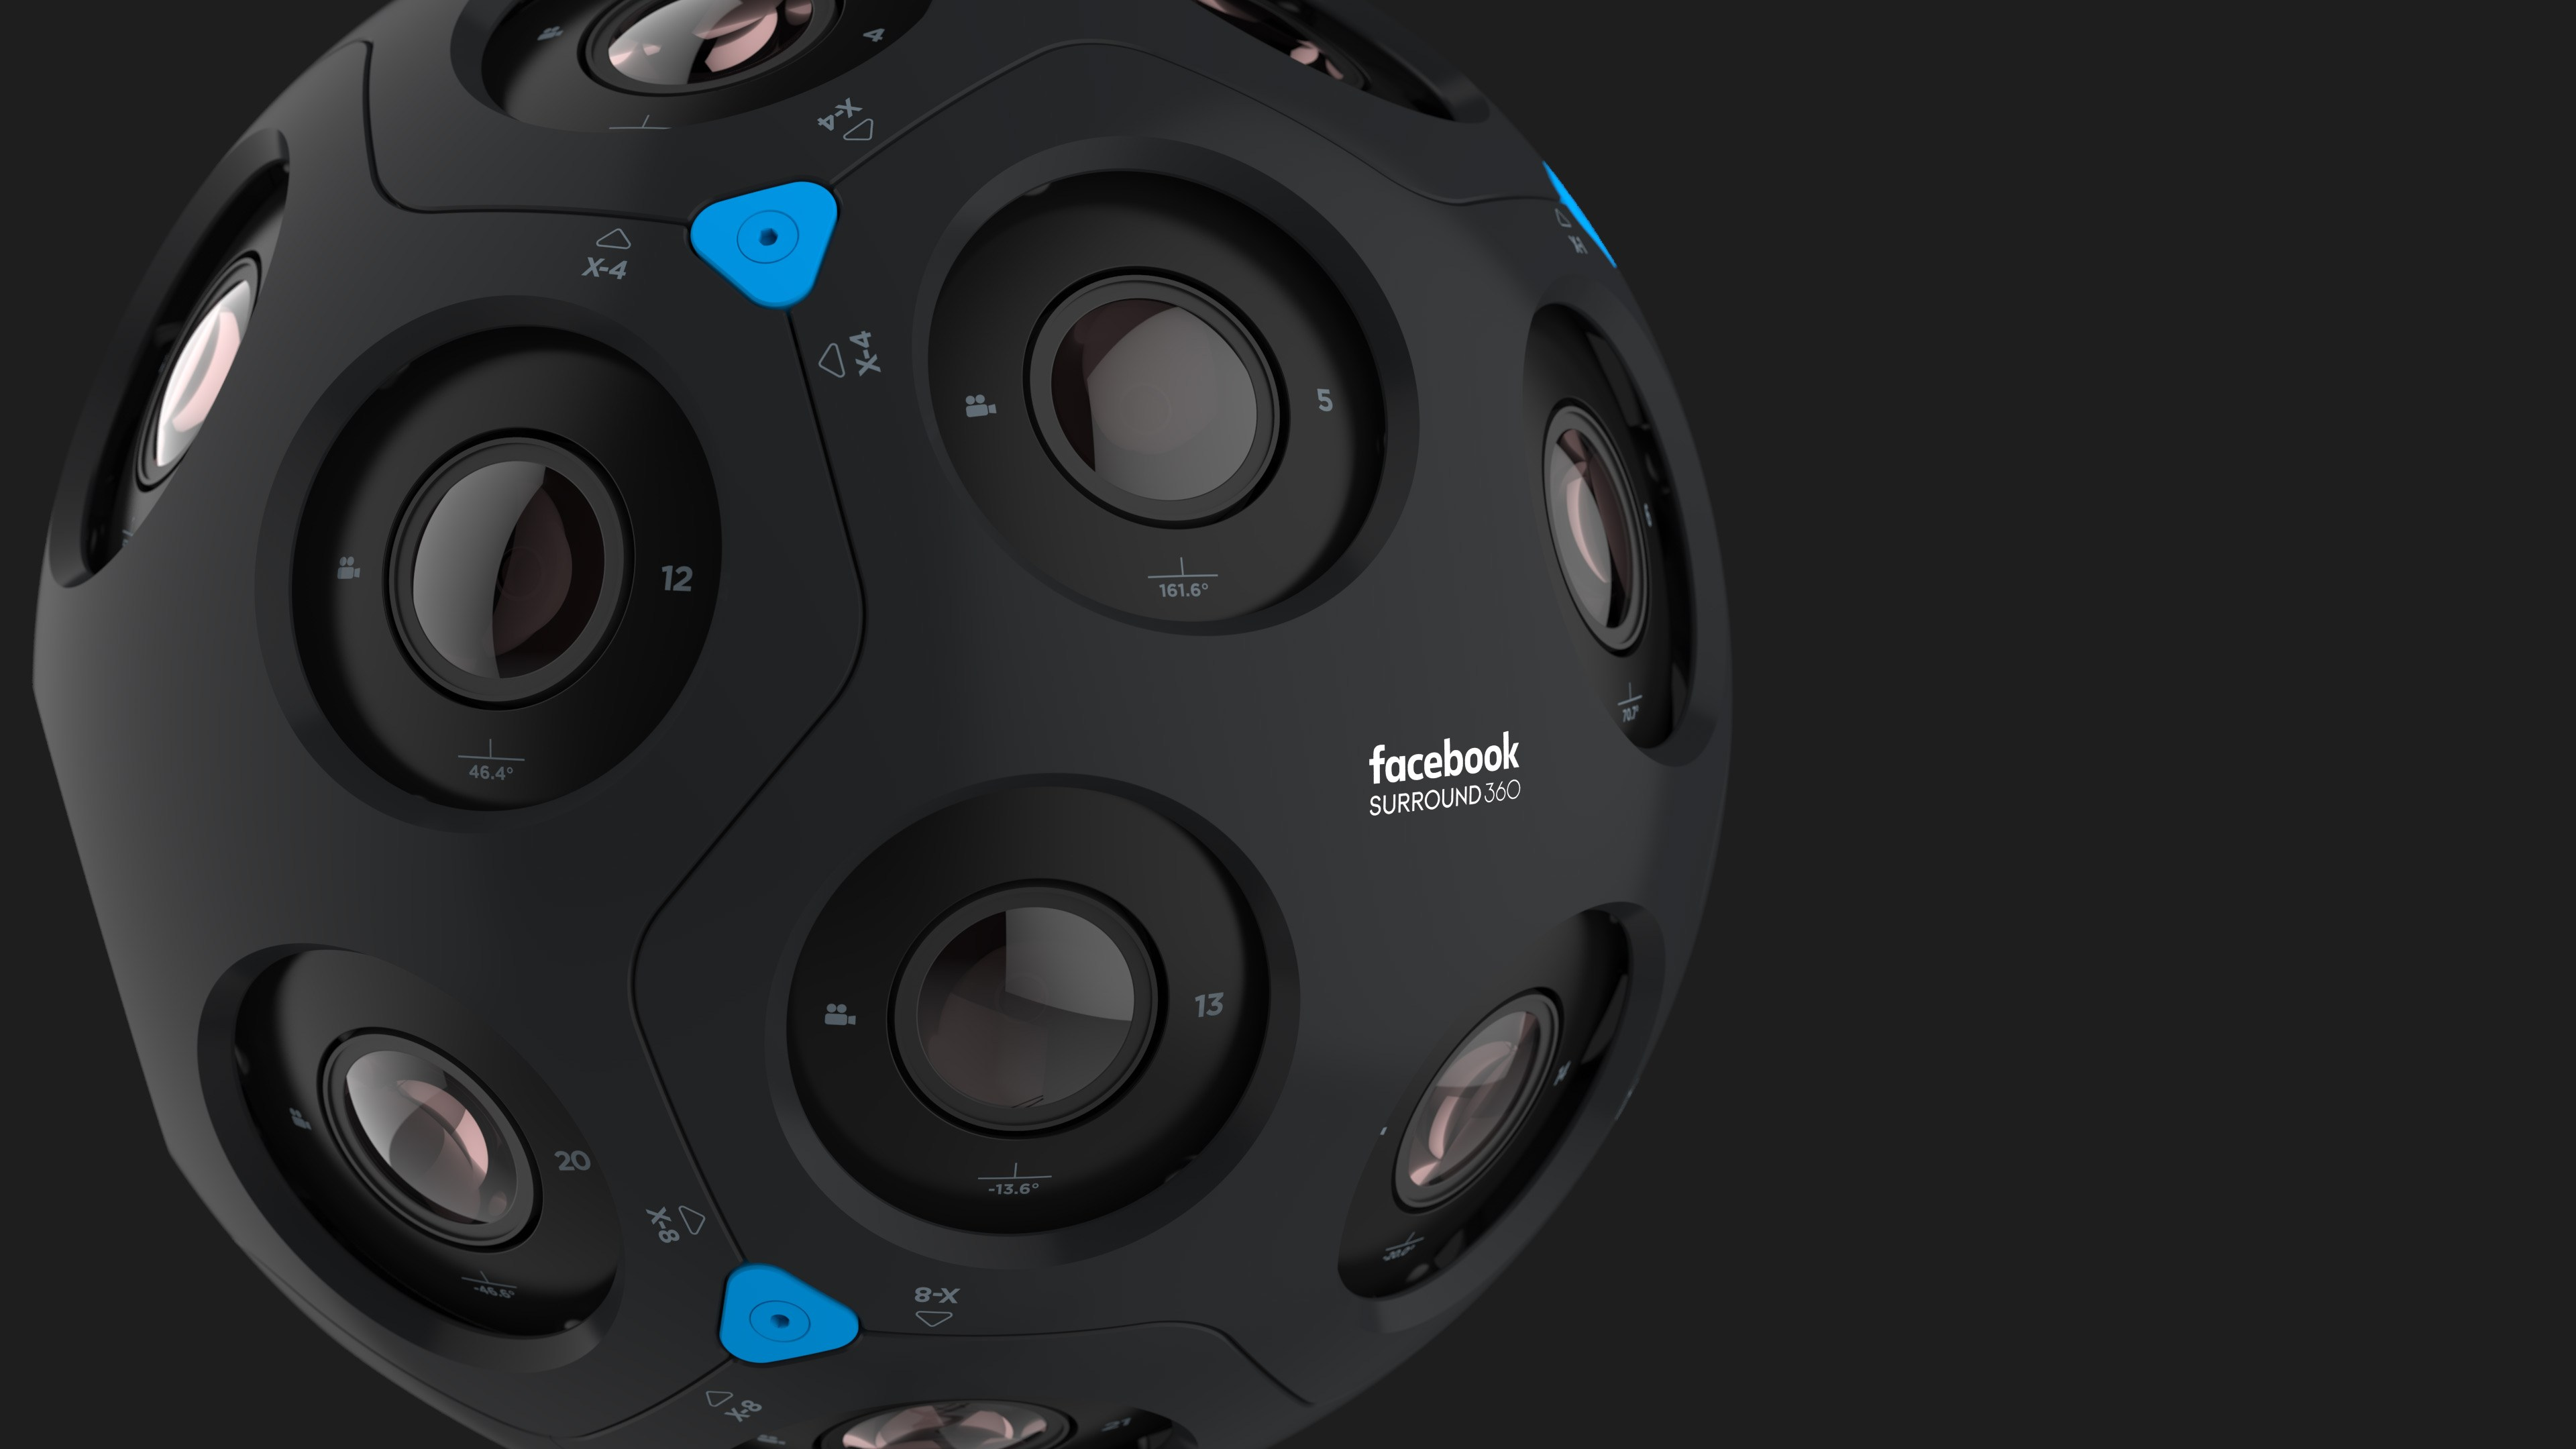 F8: Facebook Displays Newly Designed 'Surround 360'  Camera that Delivers 6 Degrees of Freedom